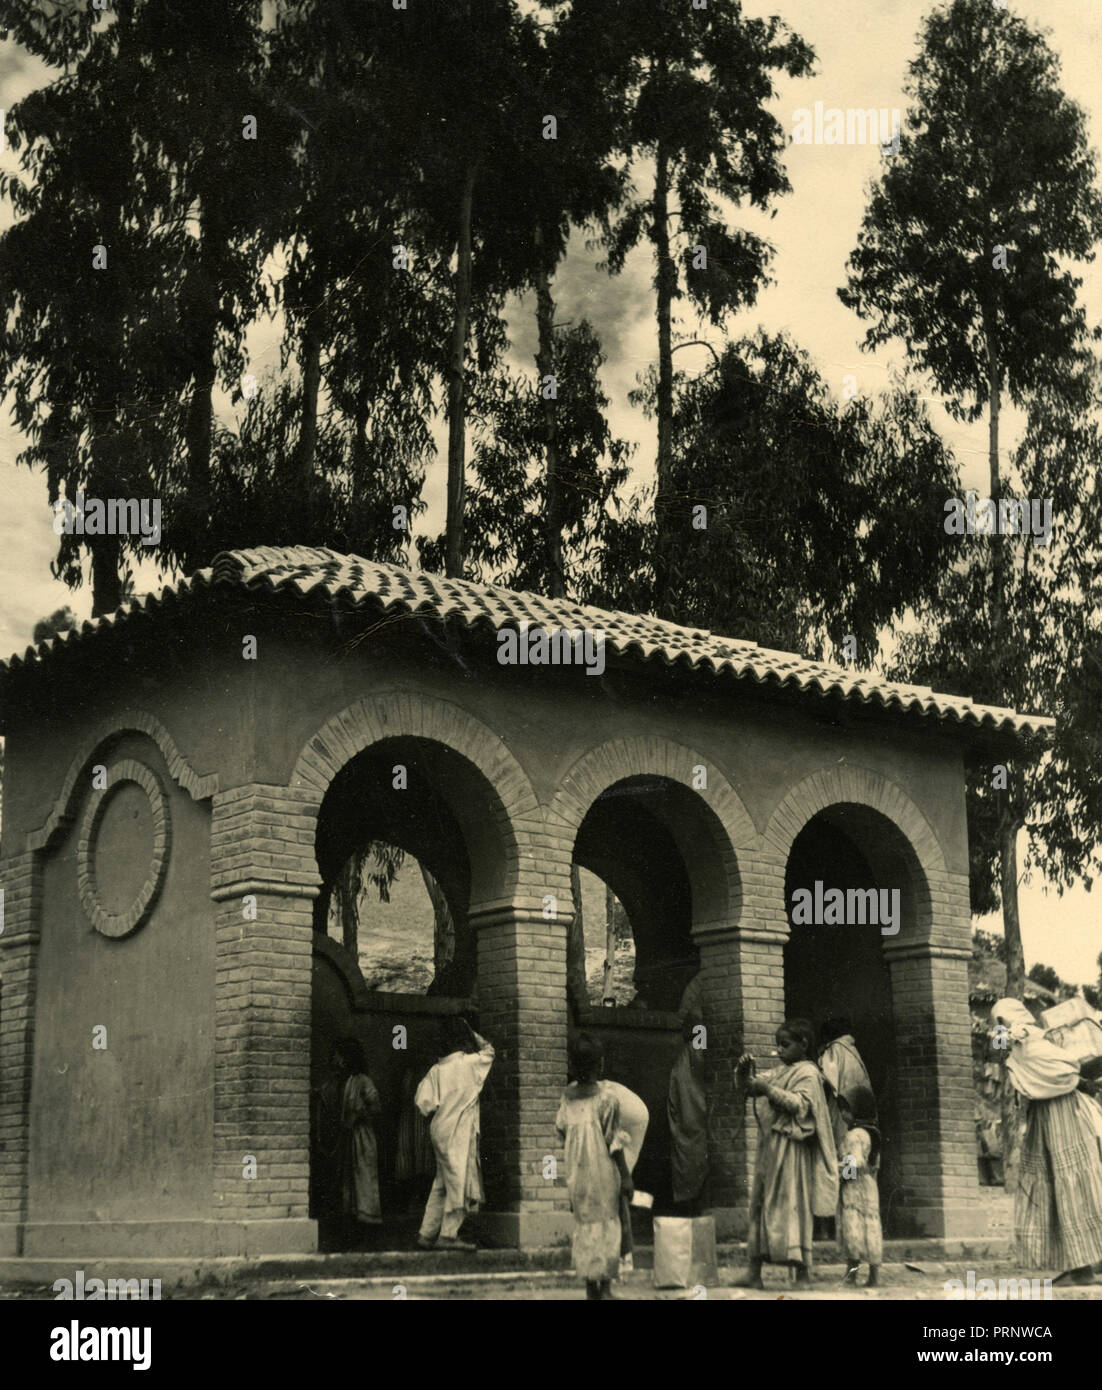 New fountains, Ethiopia 1930s - Stock Image